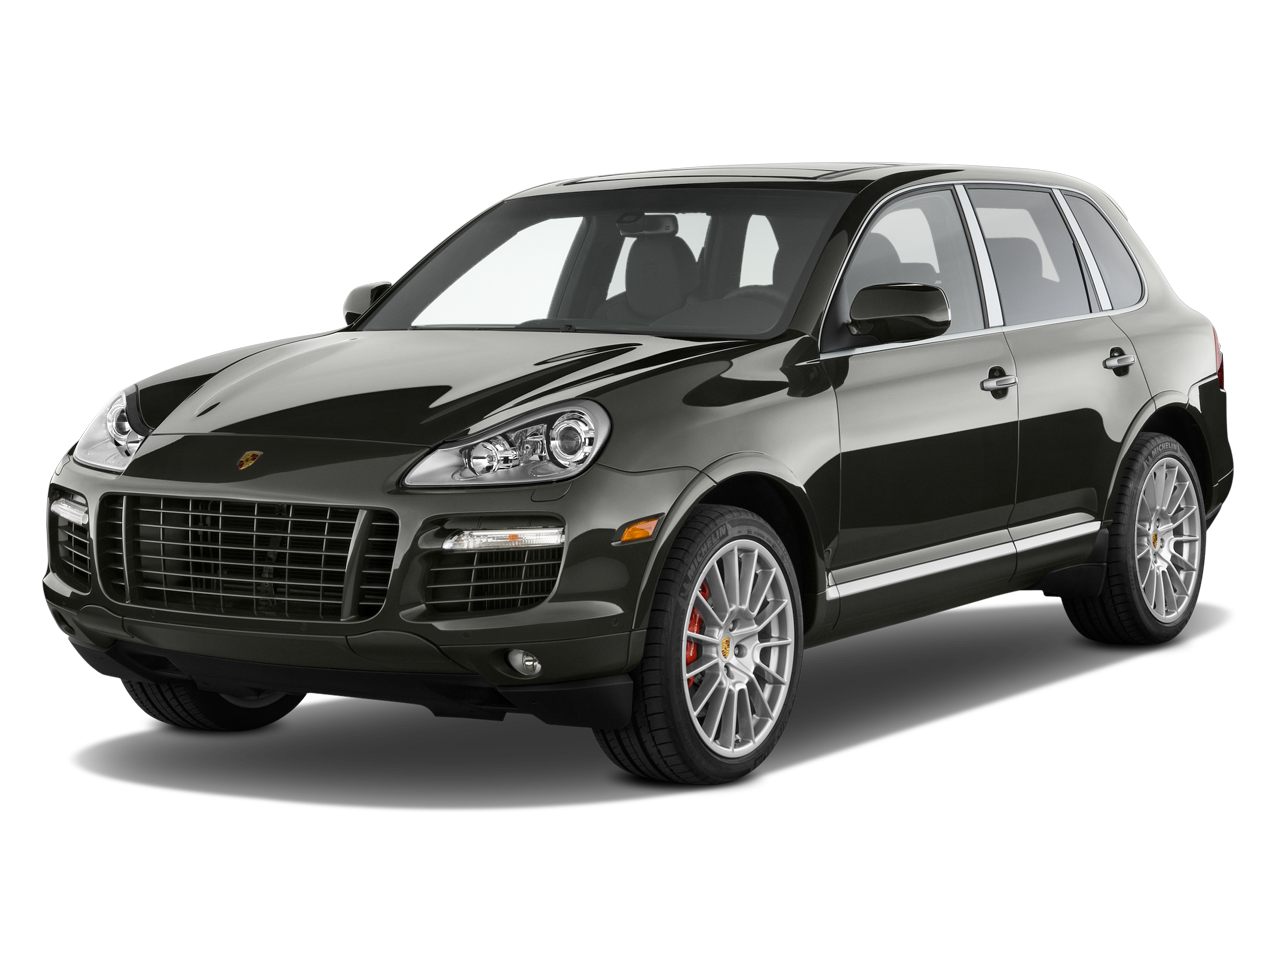 2009 Porsche Cayenne Turbo S Porsche Luxury Crossover